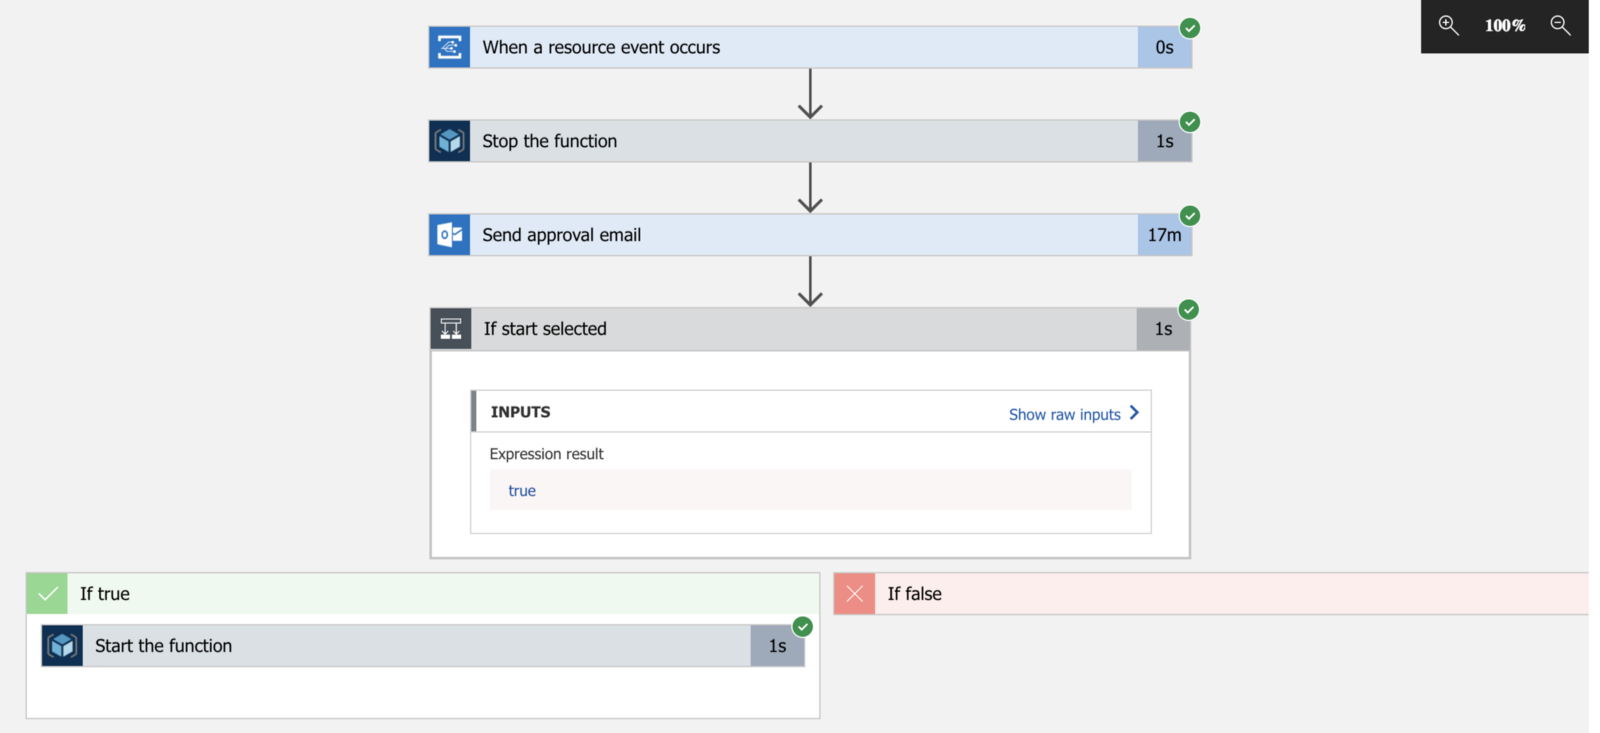 Reliable Event Processing In Azure Functions Hacker Noon To Determine What Is Happening Take The Following Circuit For Instance Waited 17 Minutes Before I Sent Approval Re Connect